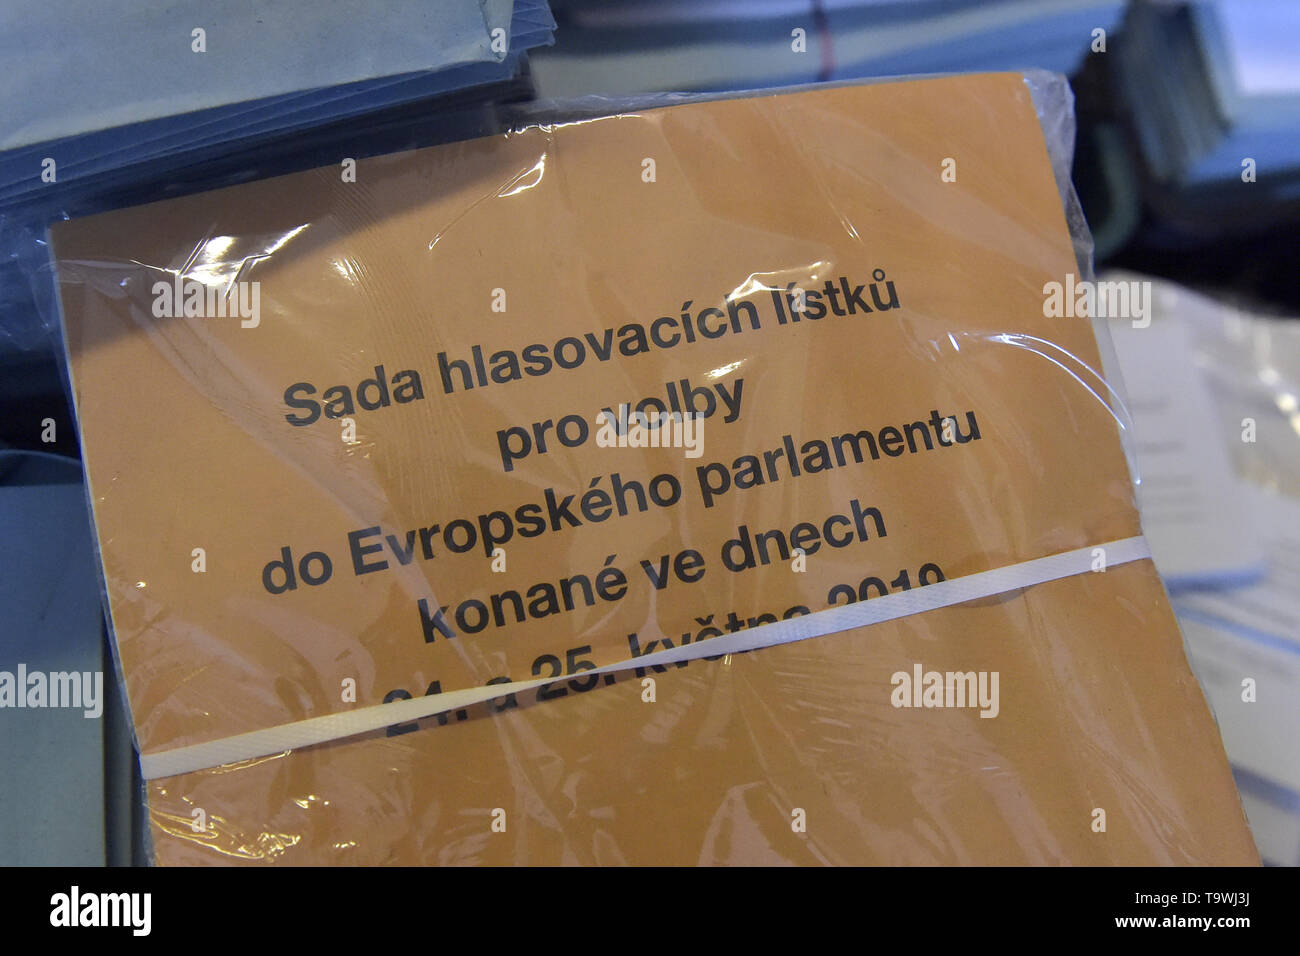 Ostrava, Czech Republic. 21st May, 2019. Ongoing preparations prior to the 2019 European Parliament election in the Czech Republic are seen on May 21, 2019, in Ostrava, Czech Republic. Credit: Jaroslav Ozana/CTK Photo/Alamy Live News Stock Photo